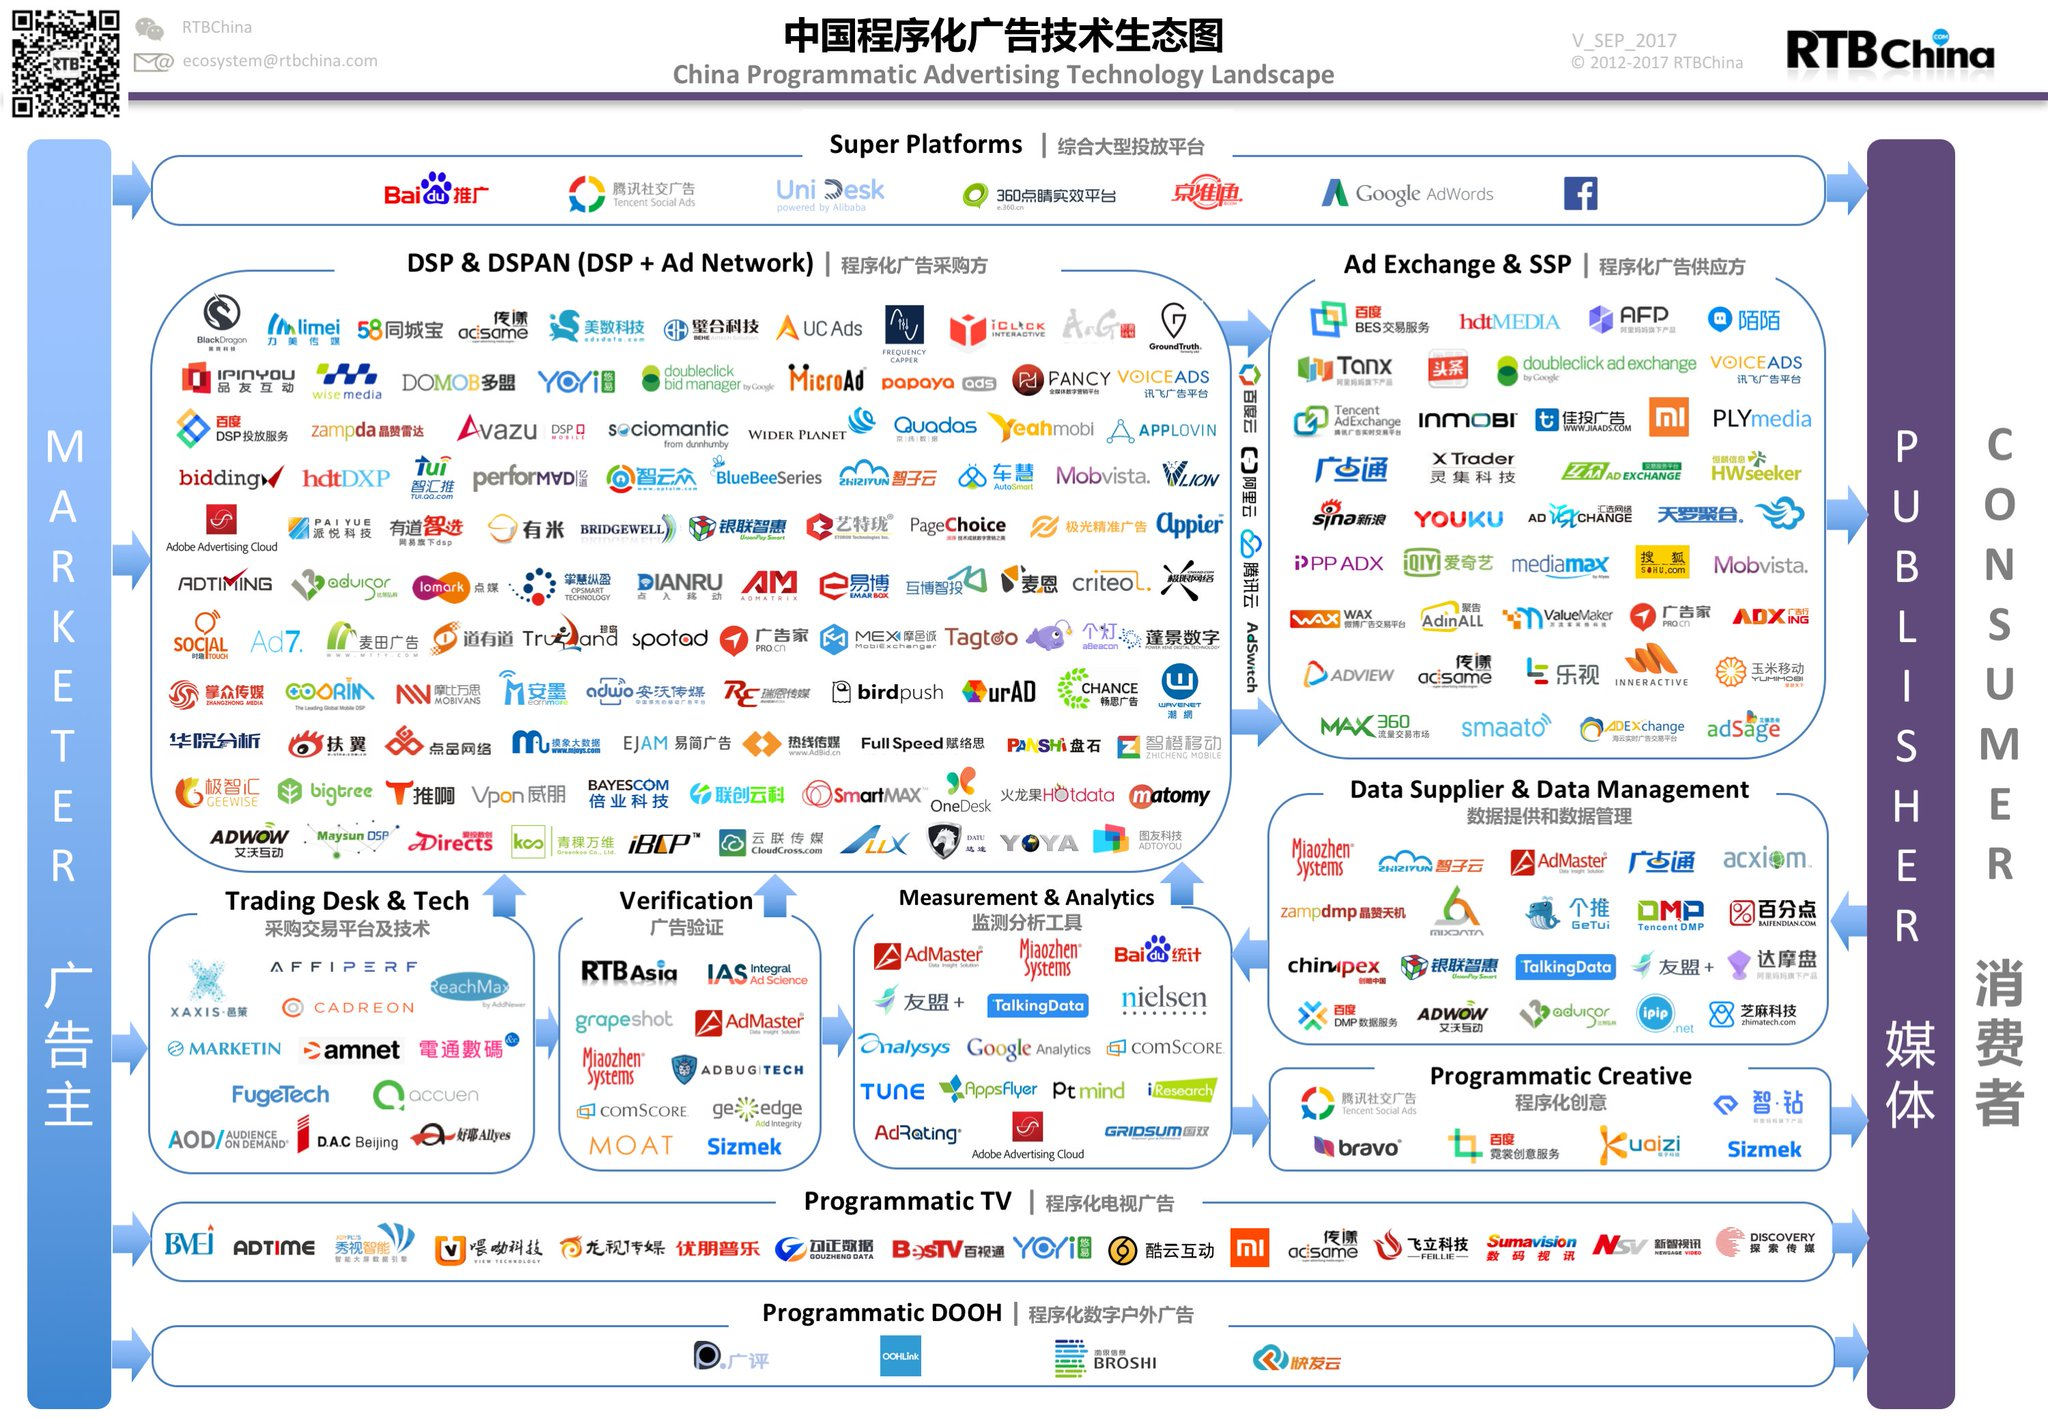 Looking forward to keynoting a marketing technology conference in Beijing next week — the martech space in China is fascinating, growing at an incredible rate, with dynamics that are both similar to yet different than the global industry. #MarTech https://t.co/UOQF059JOF